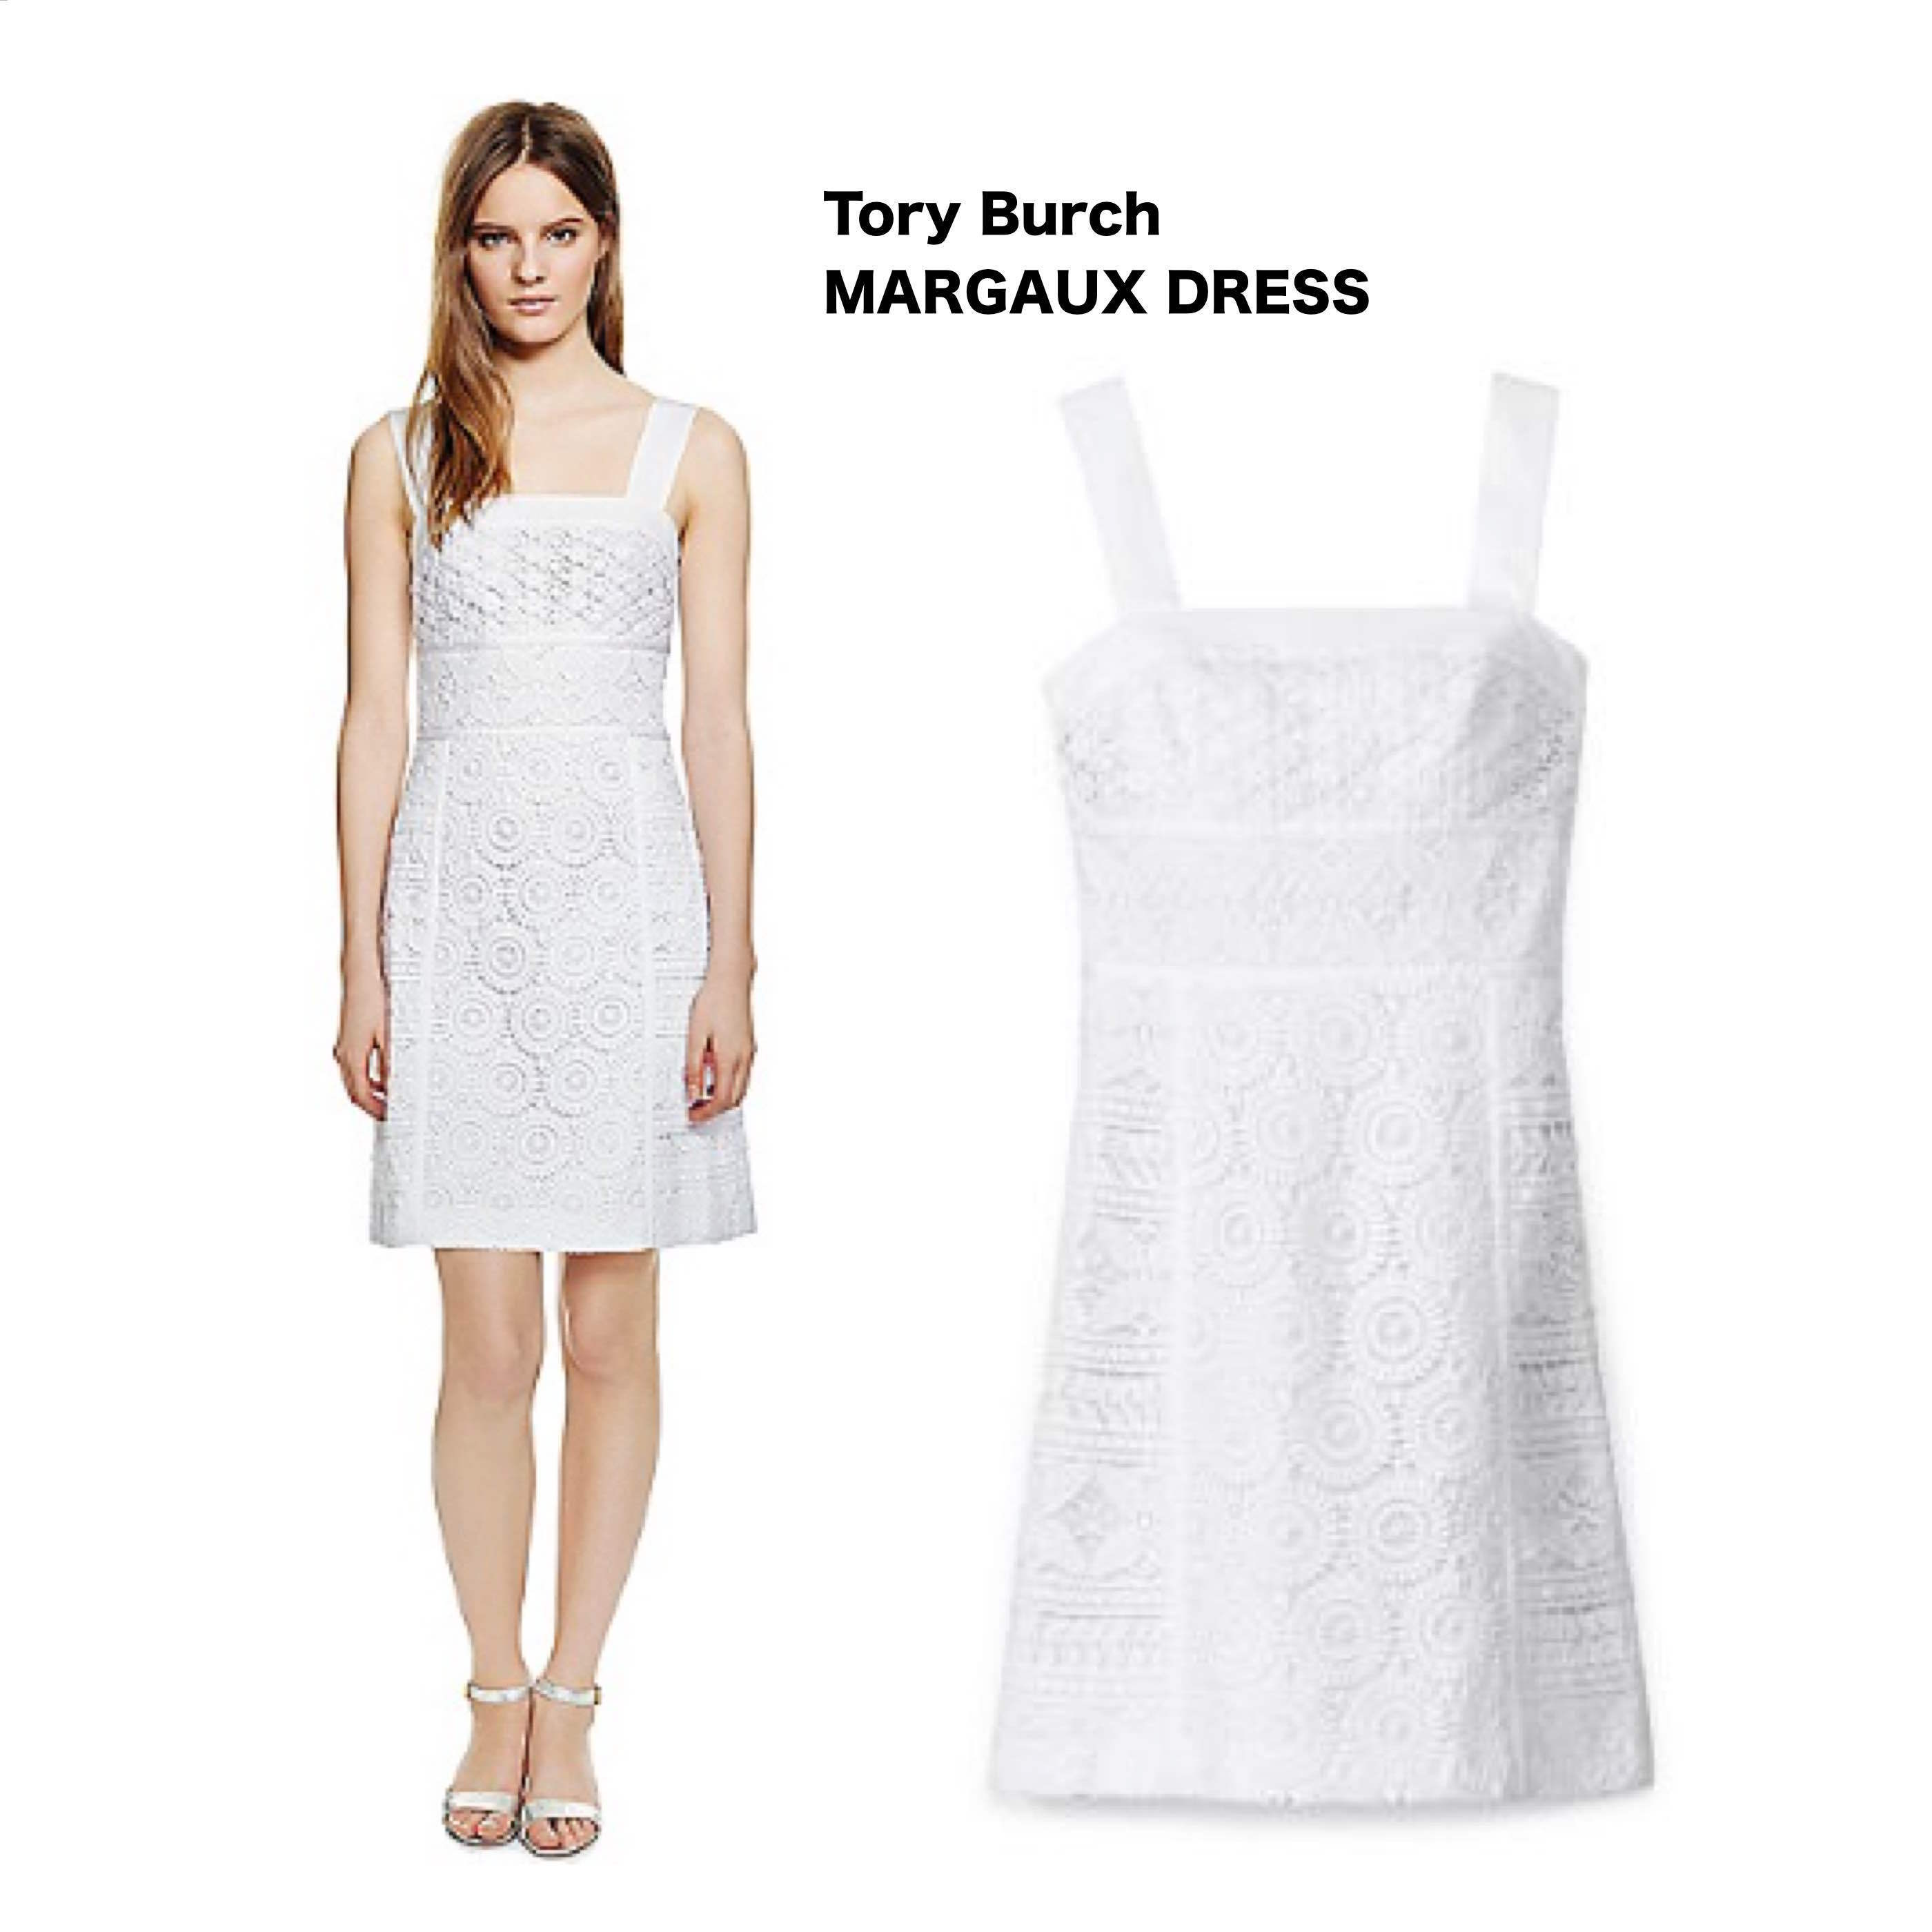 2015*Tory Burch*MARGAUX DRESS/US8即発